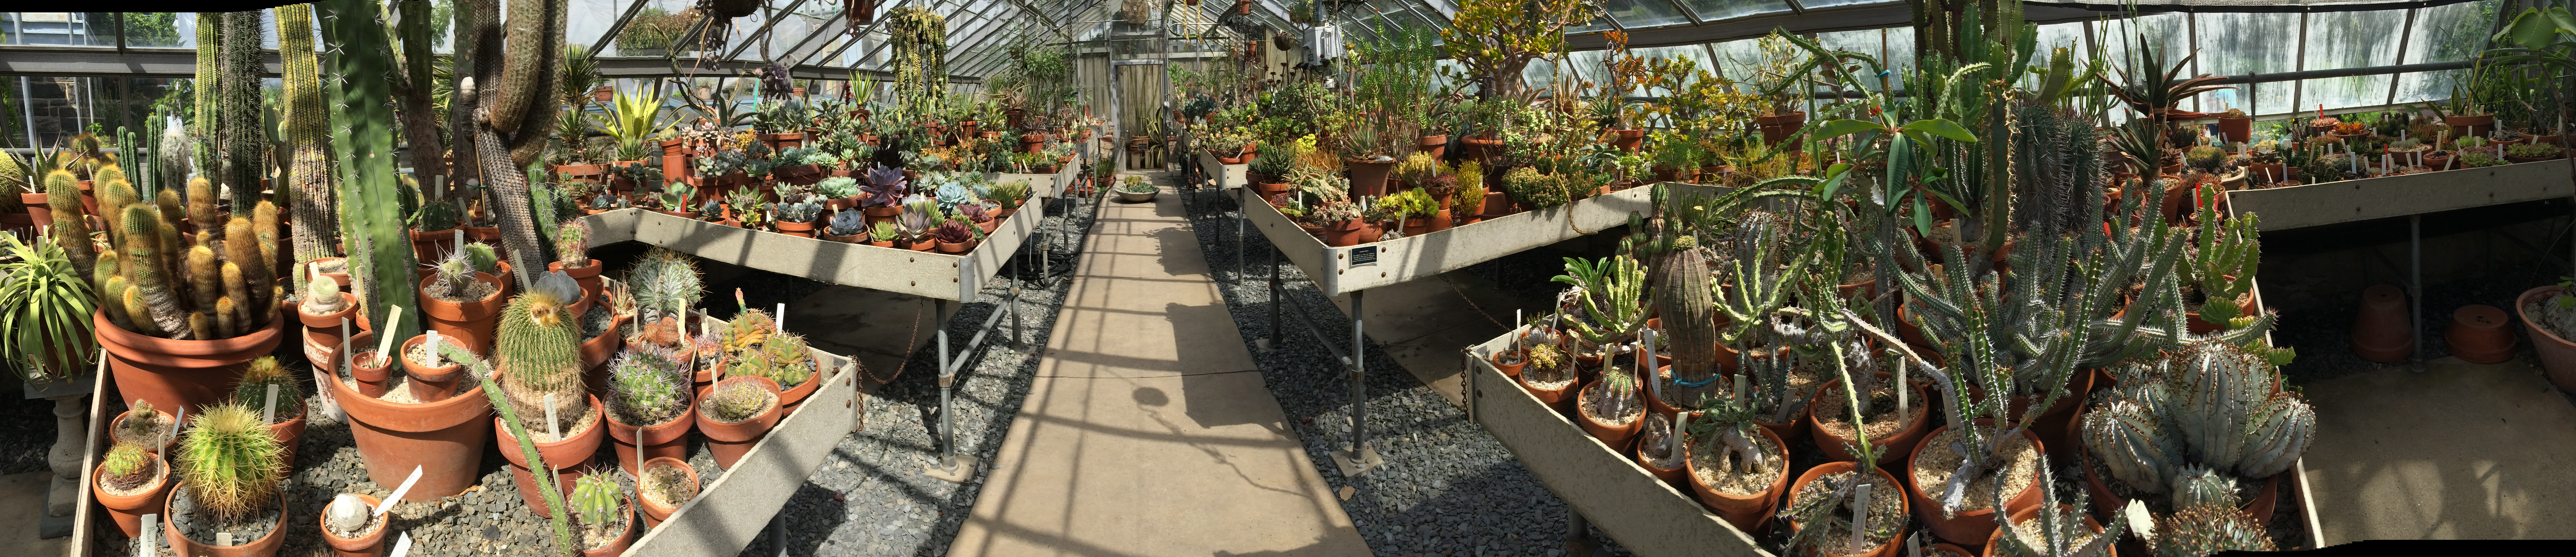 Greenhouse filled with Succulents